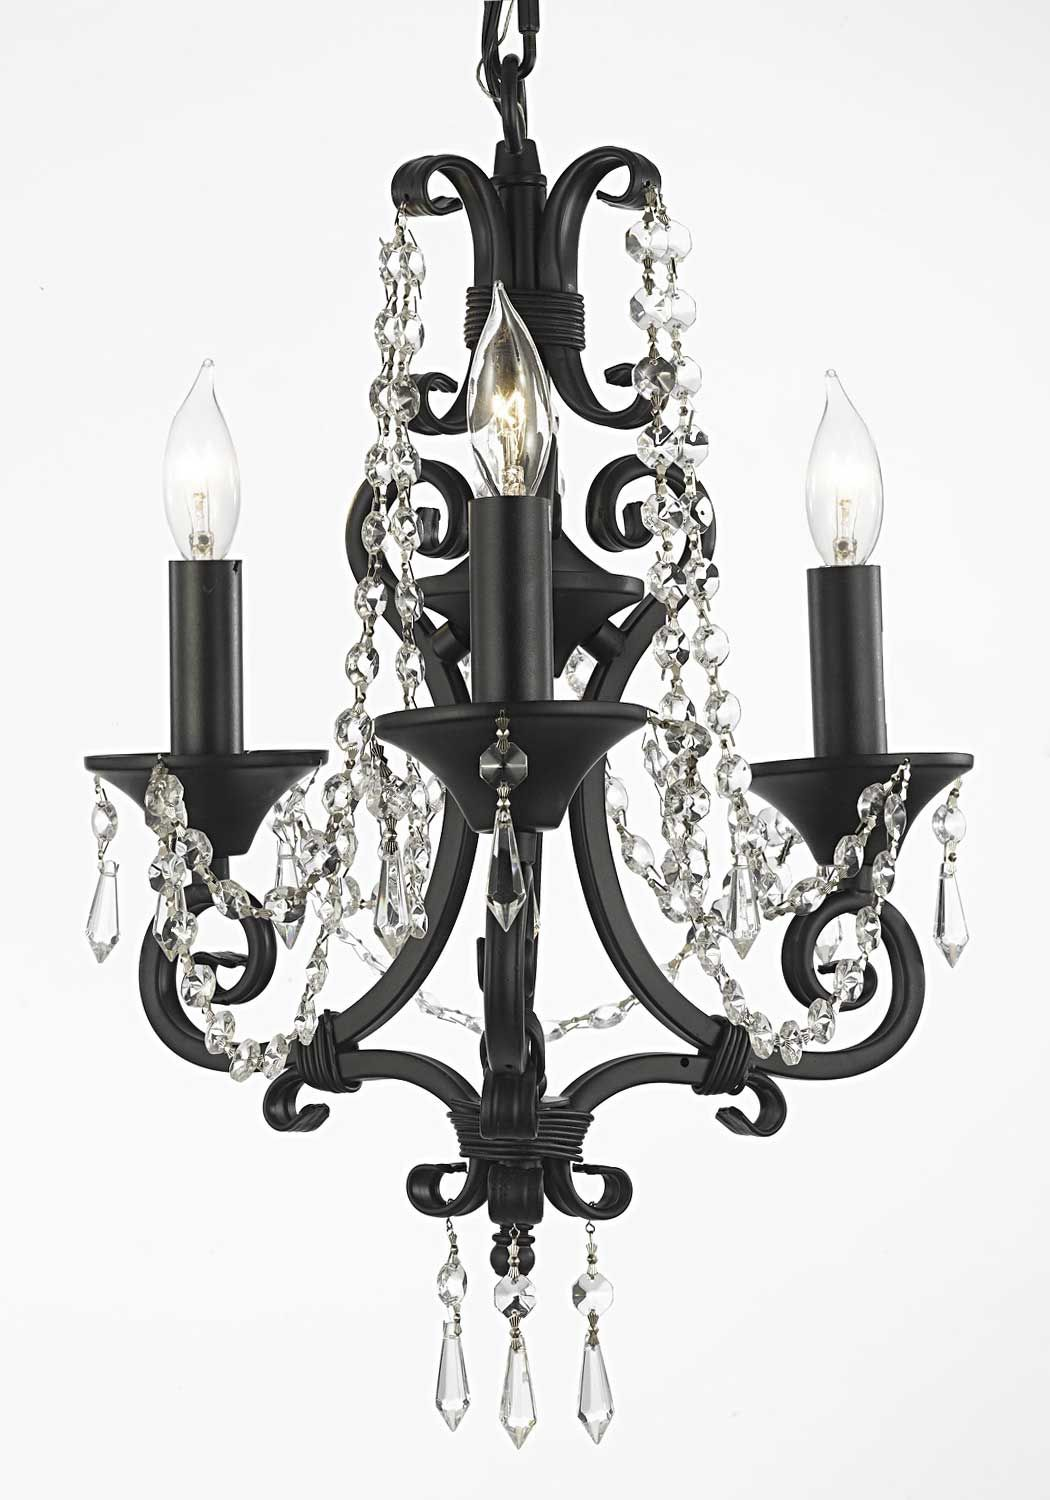 This Beautiful Chandelier Is Trimmed With Empress Crystal Tm Black Wrought Iron Chandeliers Lighting Pink Hearts